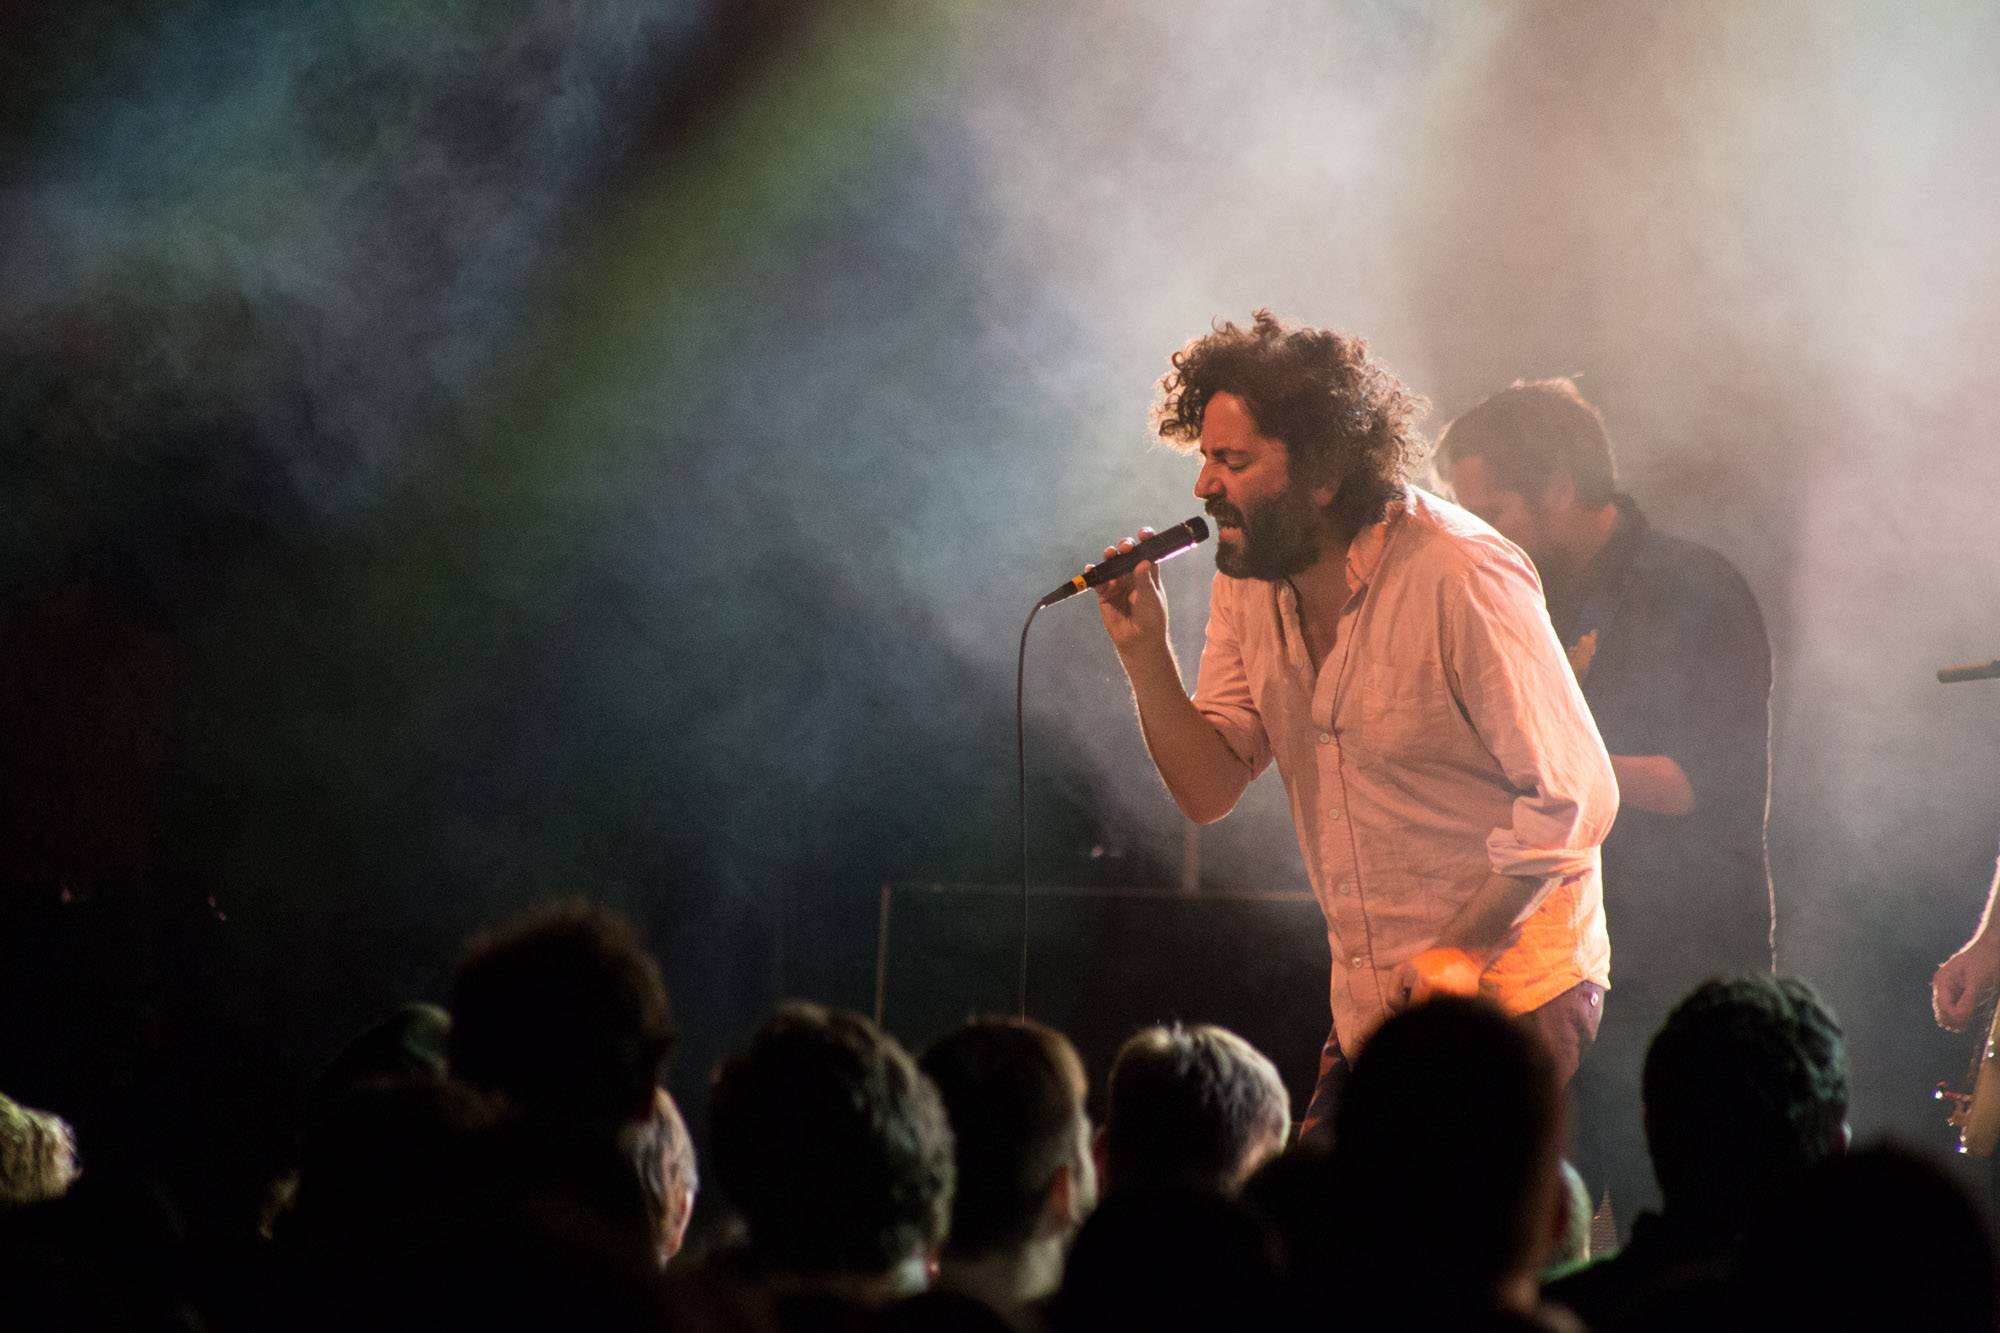 Destroyer at the Commodore Ballroom, Vancouver, Oct 17 2015. Kirk Chantraine photo.